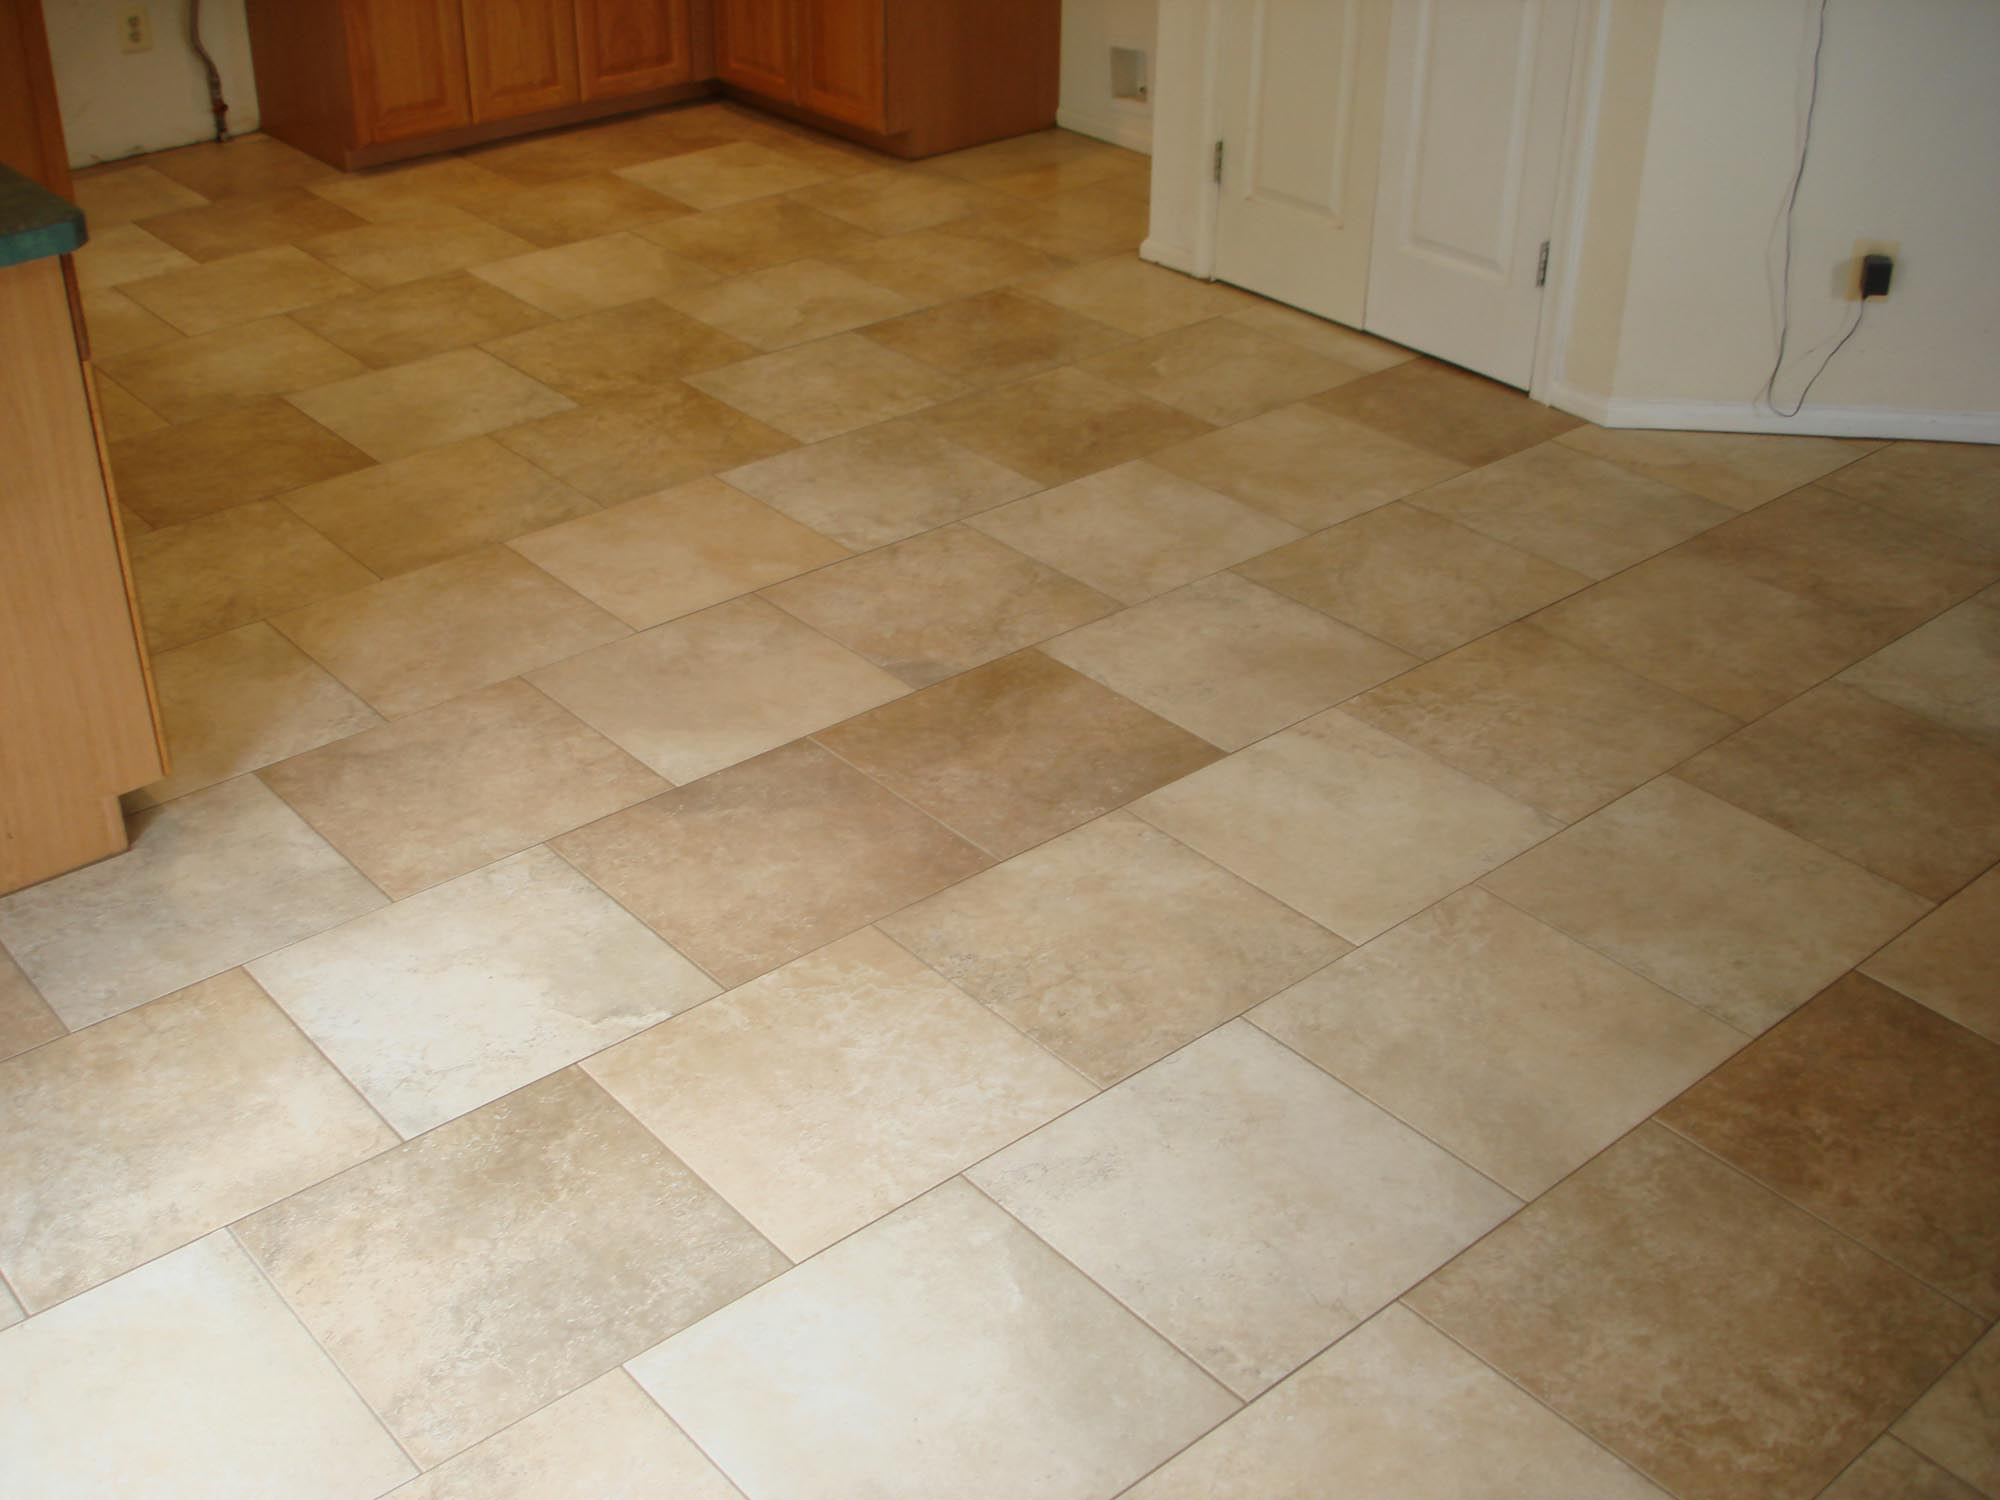 Kitchen Tiles Brick Style porcelain kitchen tile floor brick pattern | new jersey custom tile